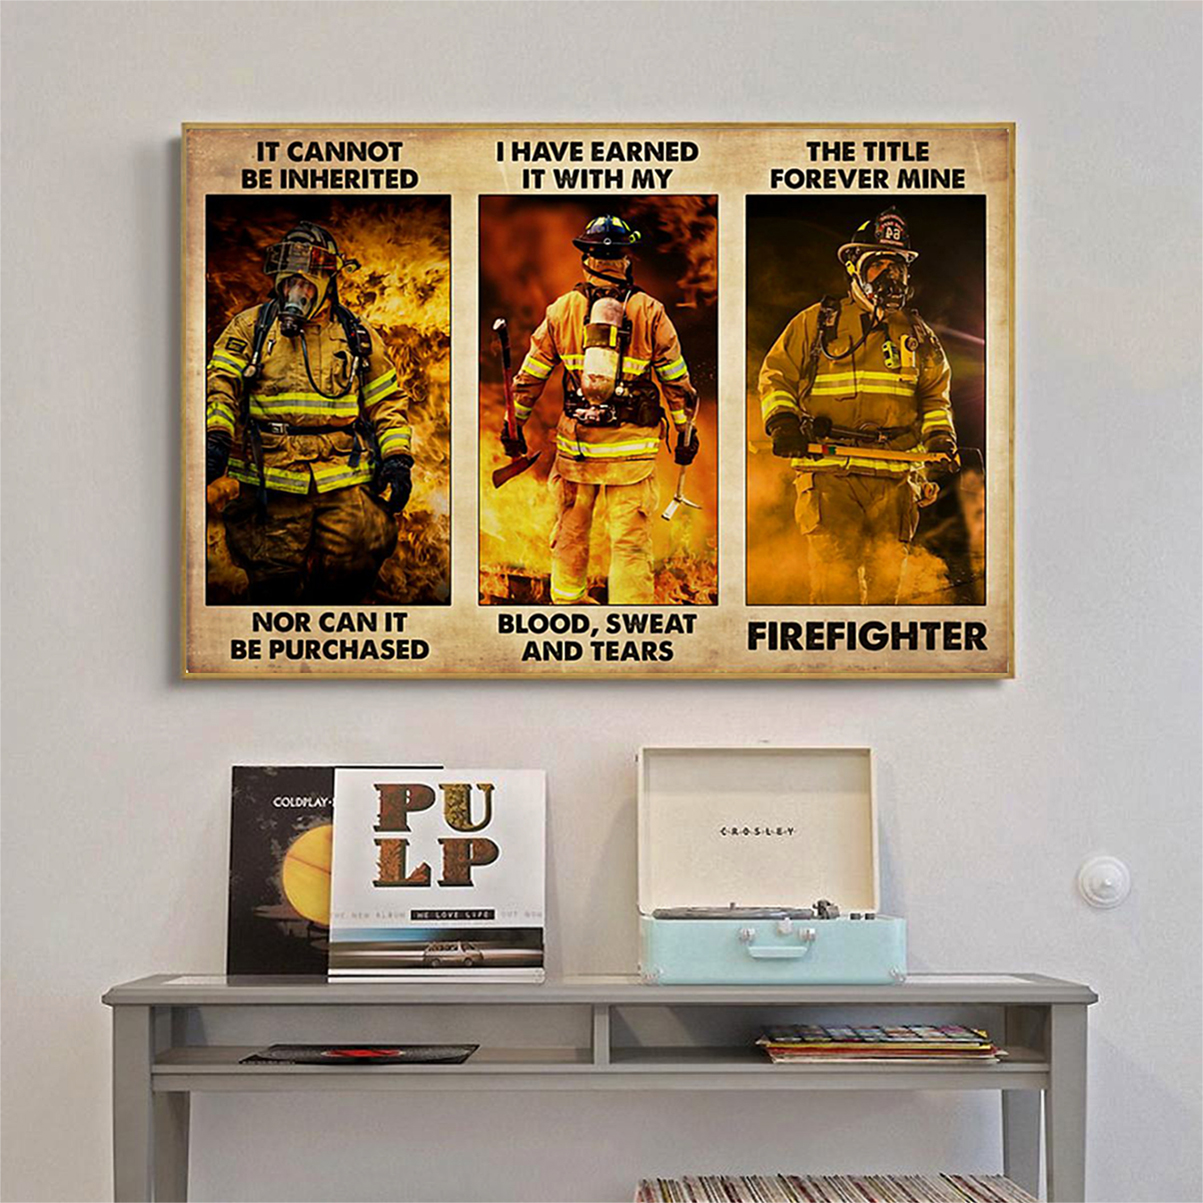 Firefighter it cannot be inherited poster A3